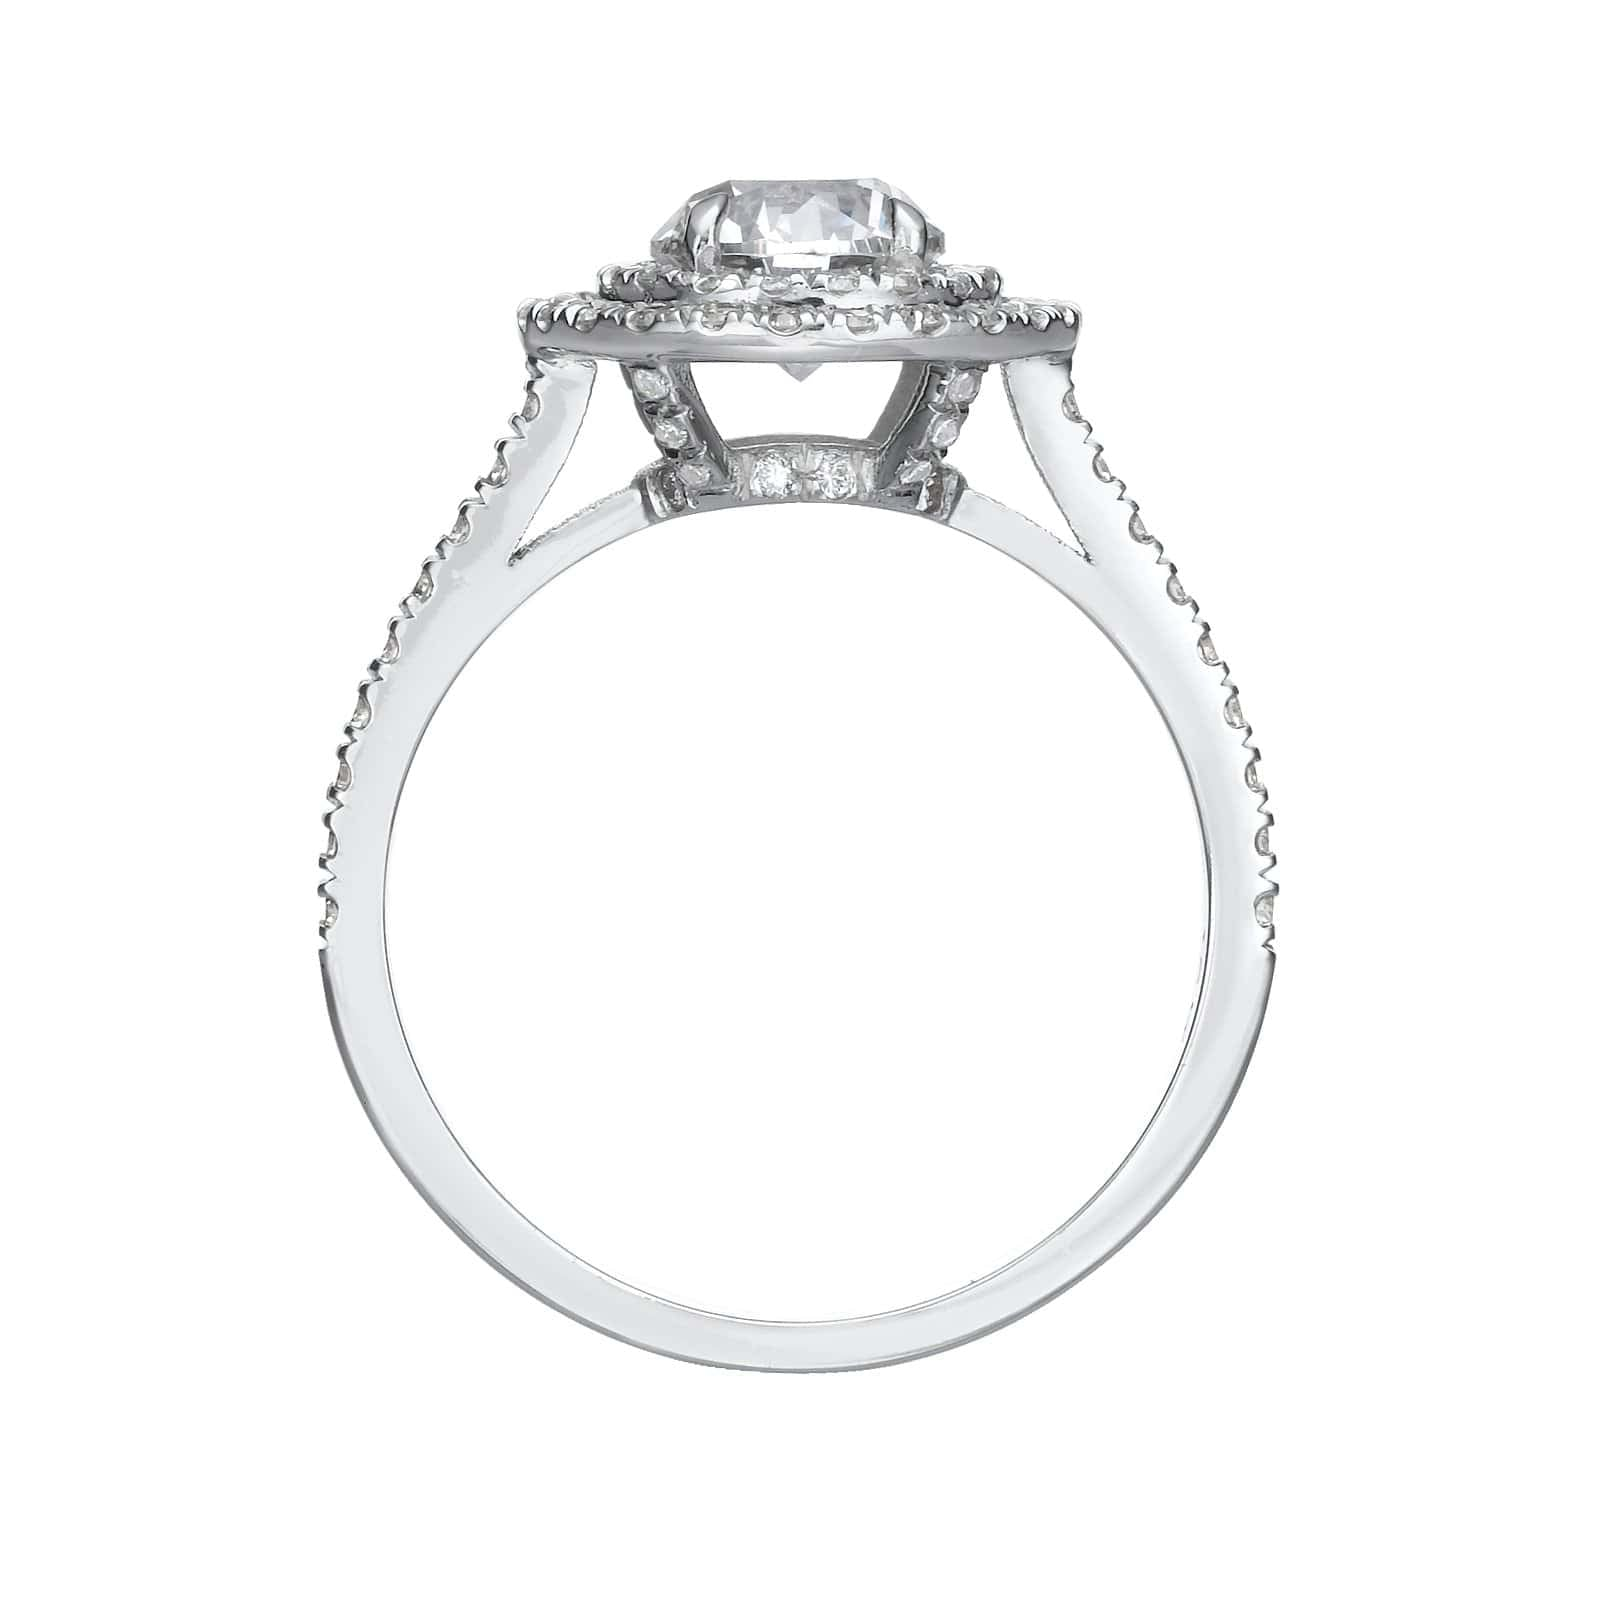 1.77 ct Round Brilliant Cut Diamond Engagement Ring